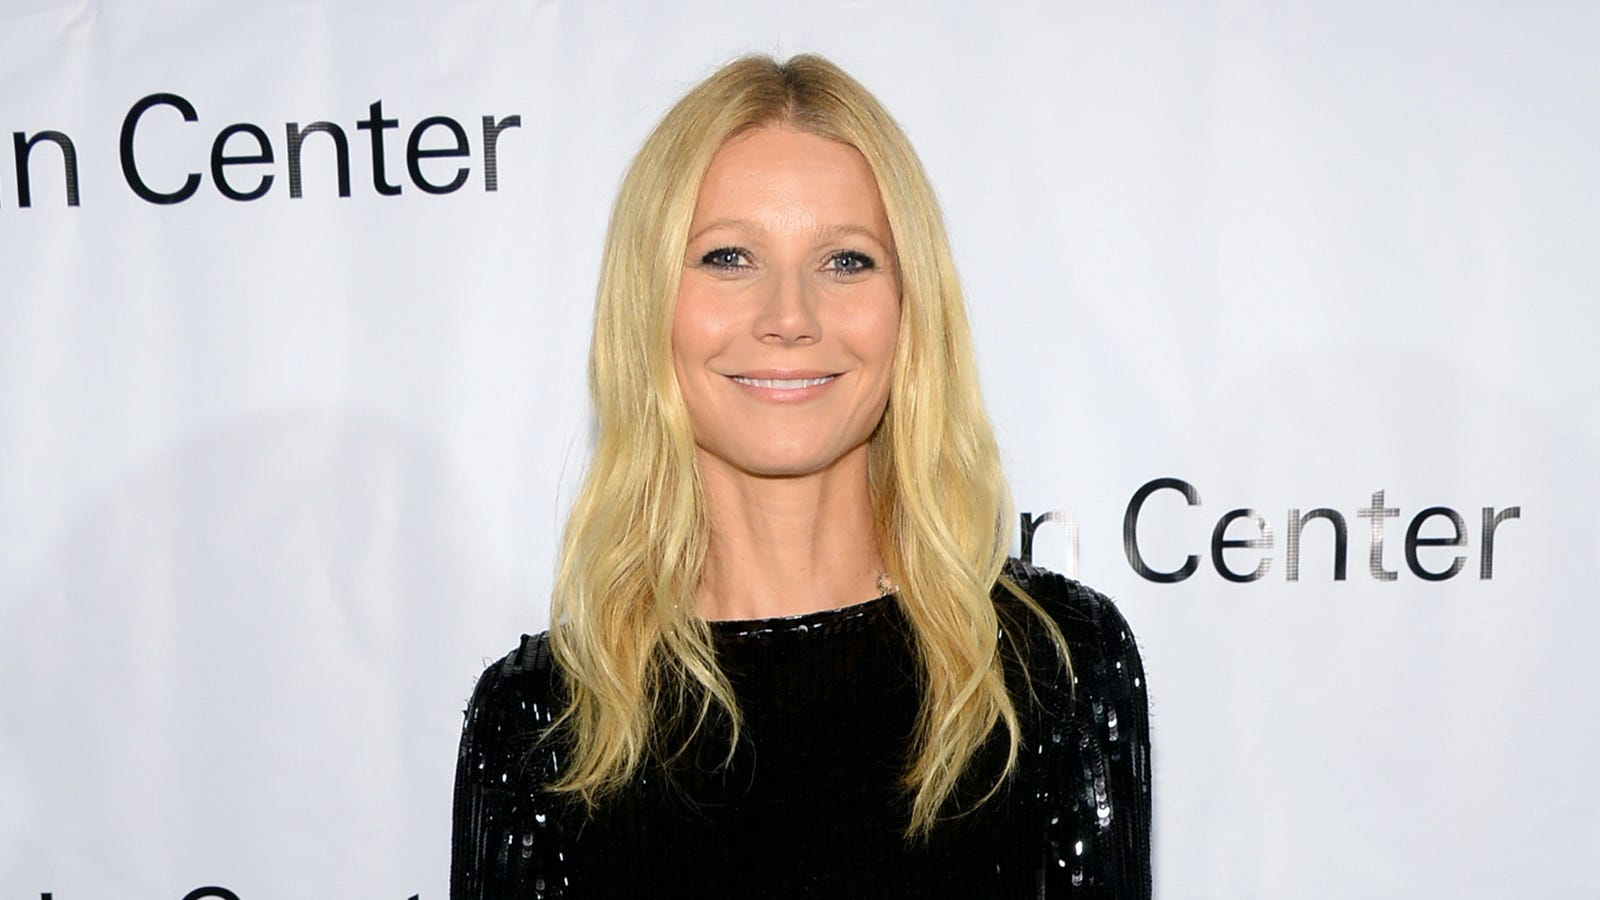 pictures Gwyneth Paltrow Claims Water Has Feelings in Weird New BlogPost